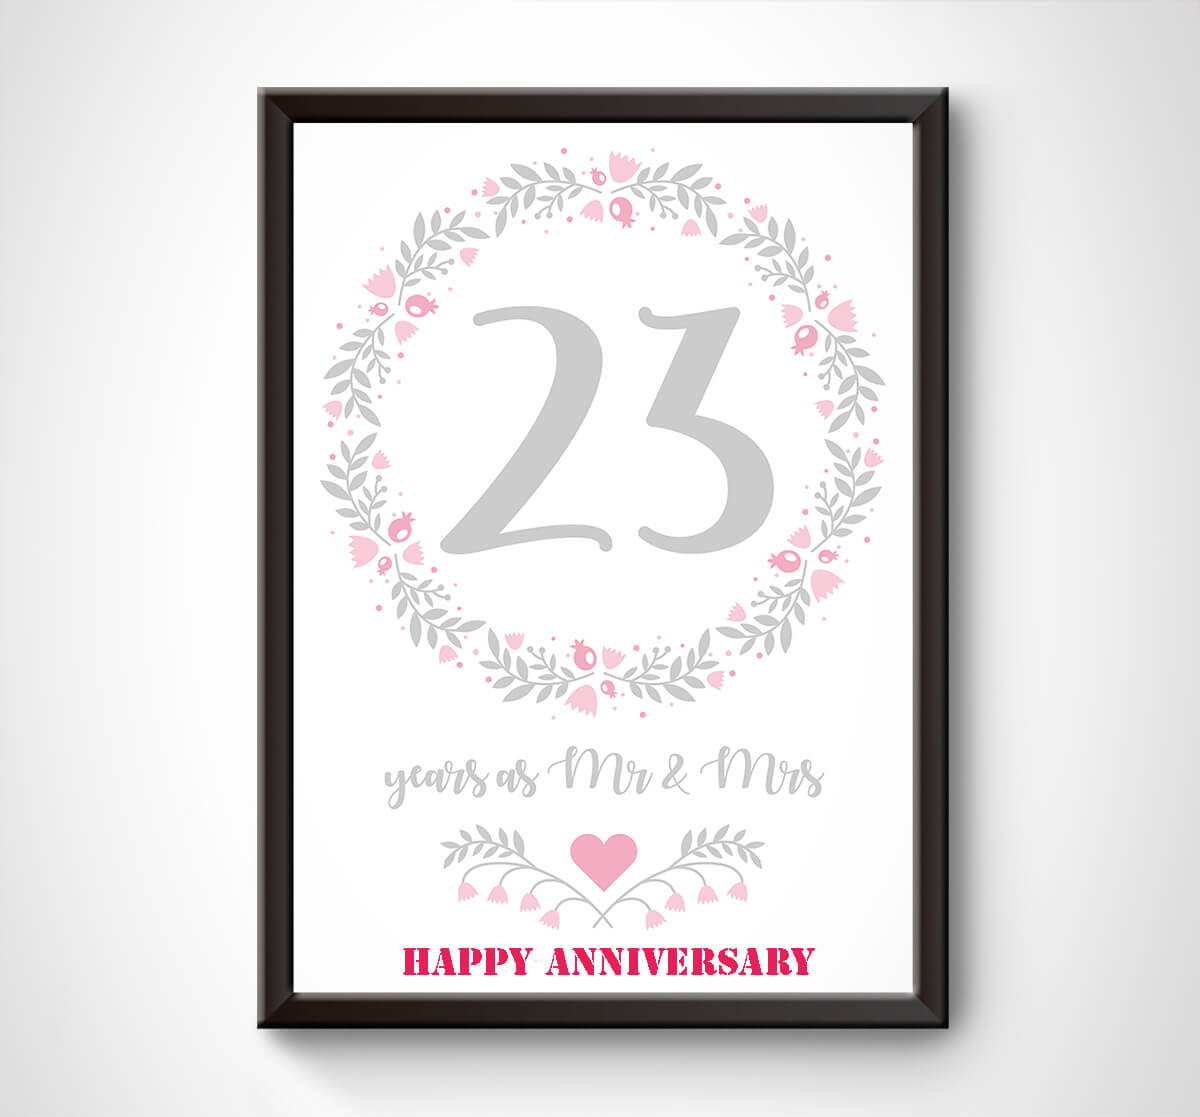 Happy 23rd Anniversary Images For Husband